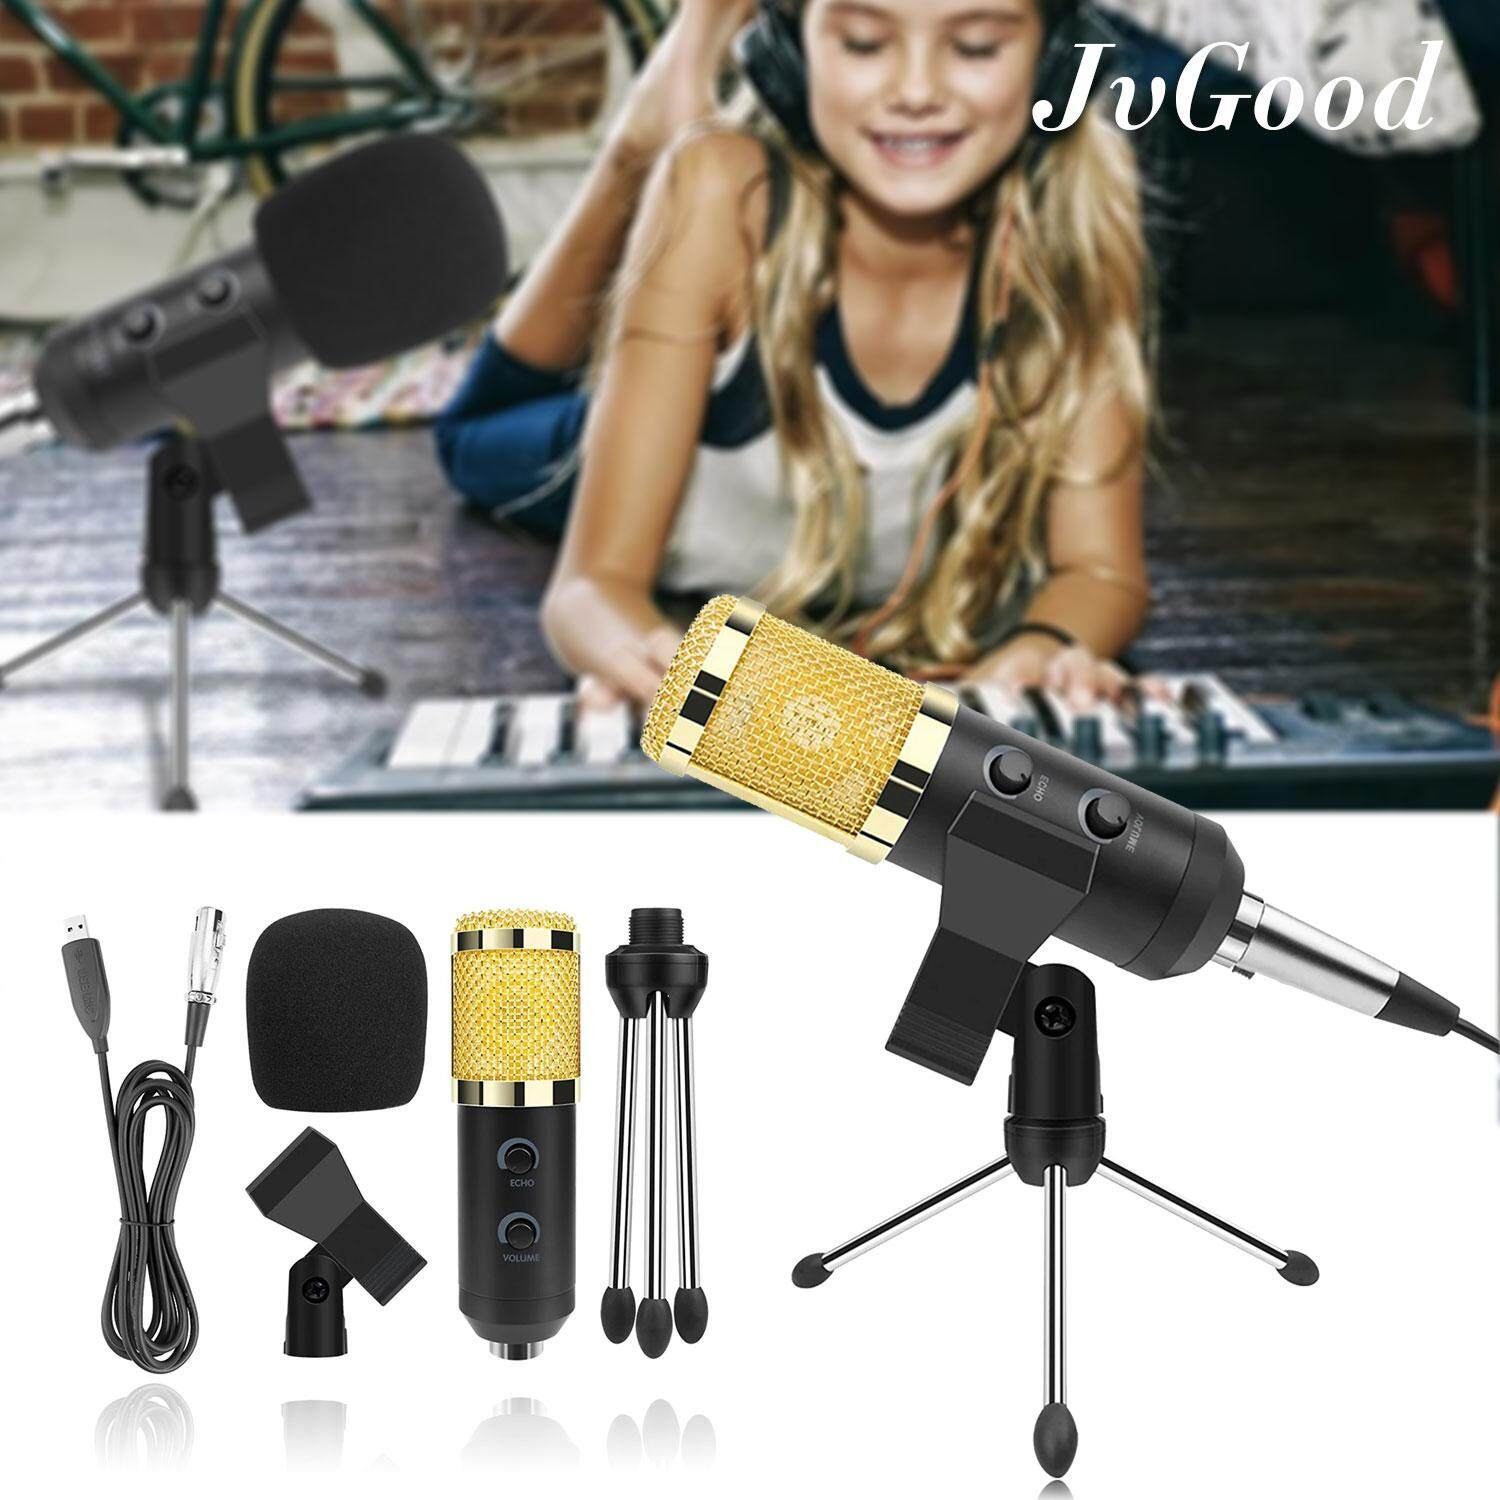 Jvgood Recording Microphone Accessories Usb Studio Condenser Youtube Csgo Studio Broadcasting Recording Condenser Microphone With Pop Filter, Mic Holder And 2m Cable By Jvgood.